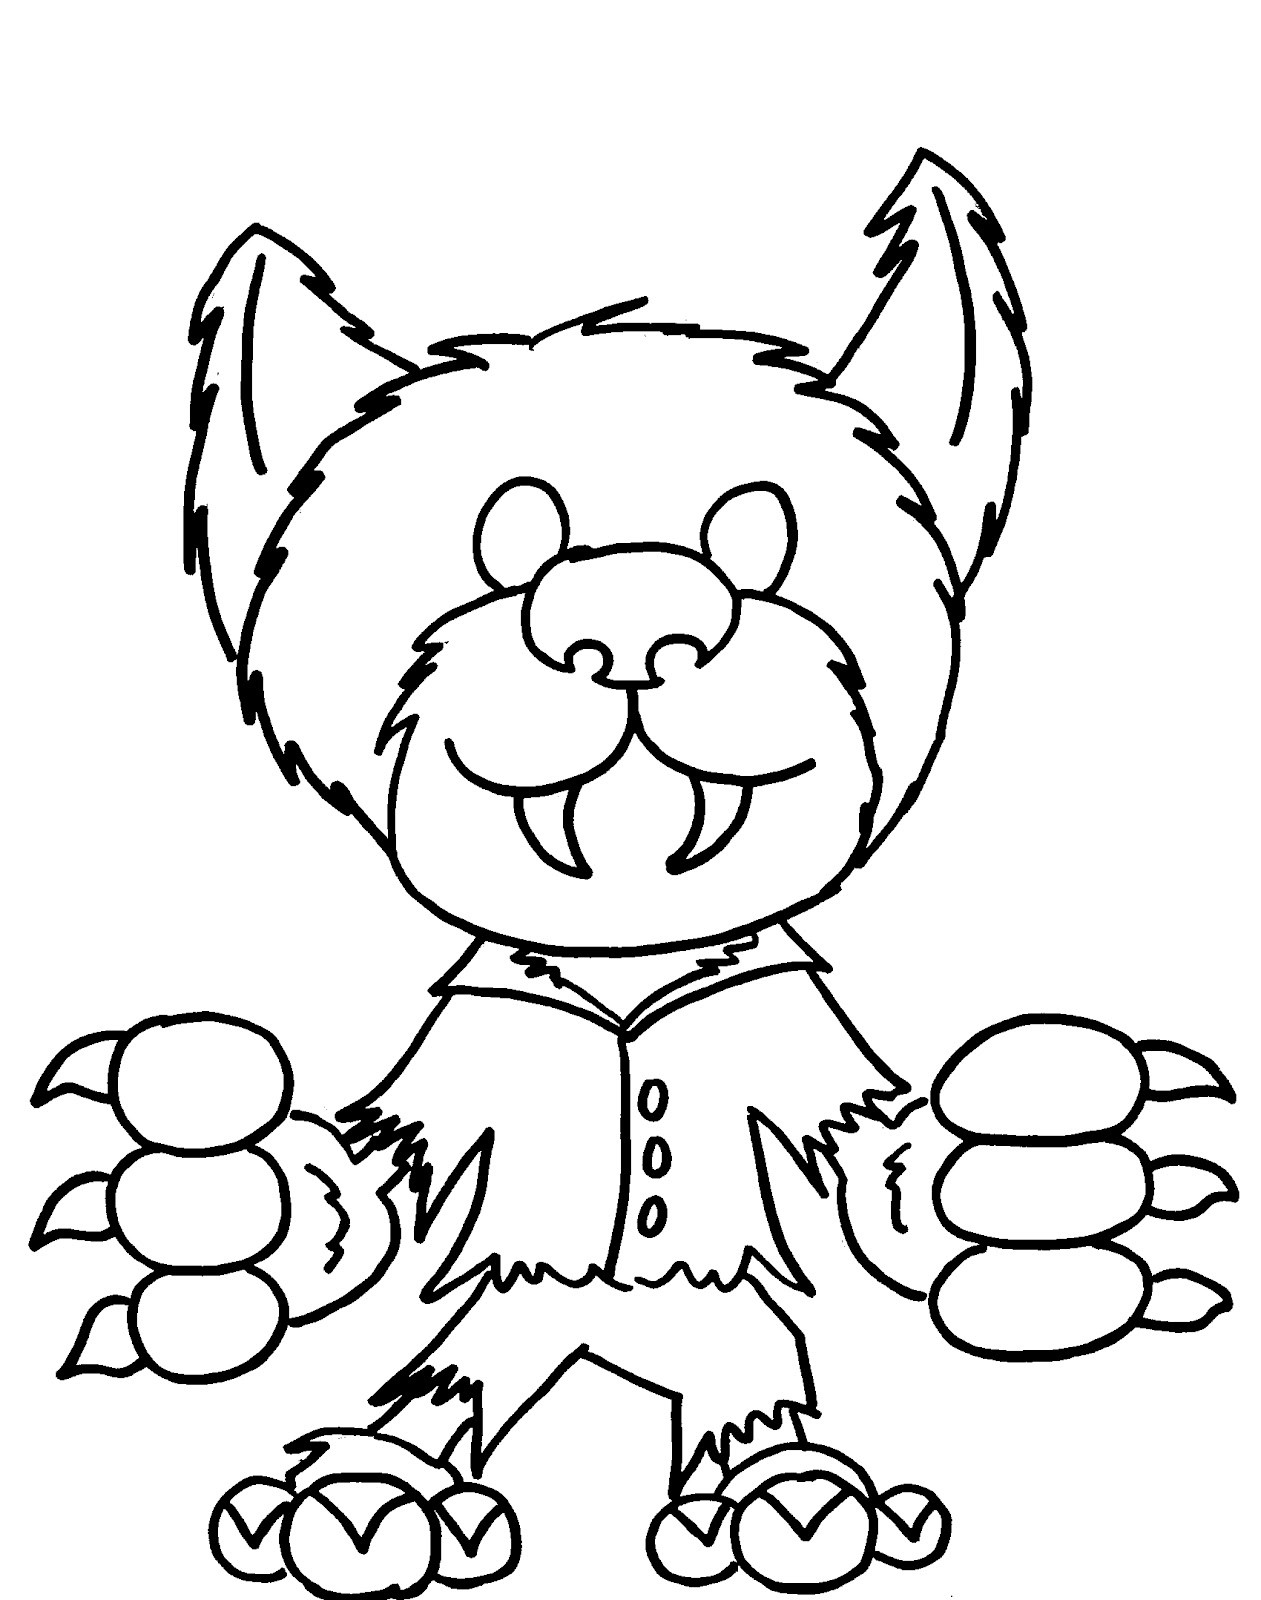 Best ideas about Cute Halloween Coloring Sheets For Kids . Save or Pin 50 Free Printable Halloween Coloring Pages For Kids Now.